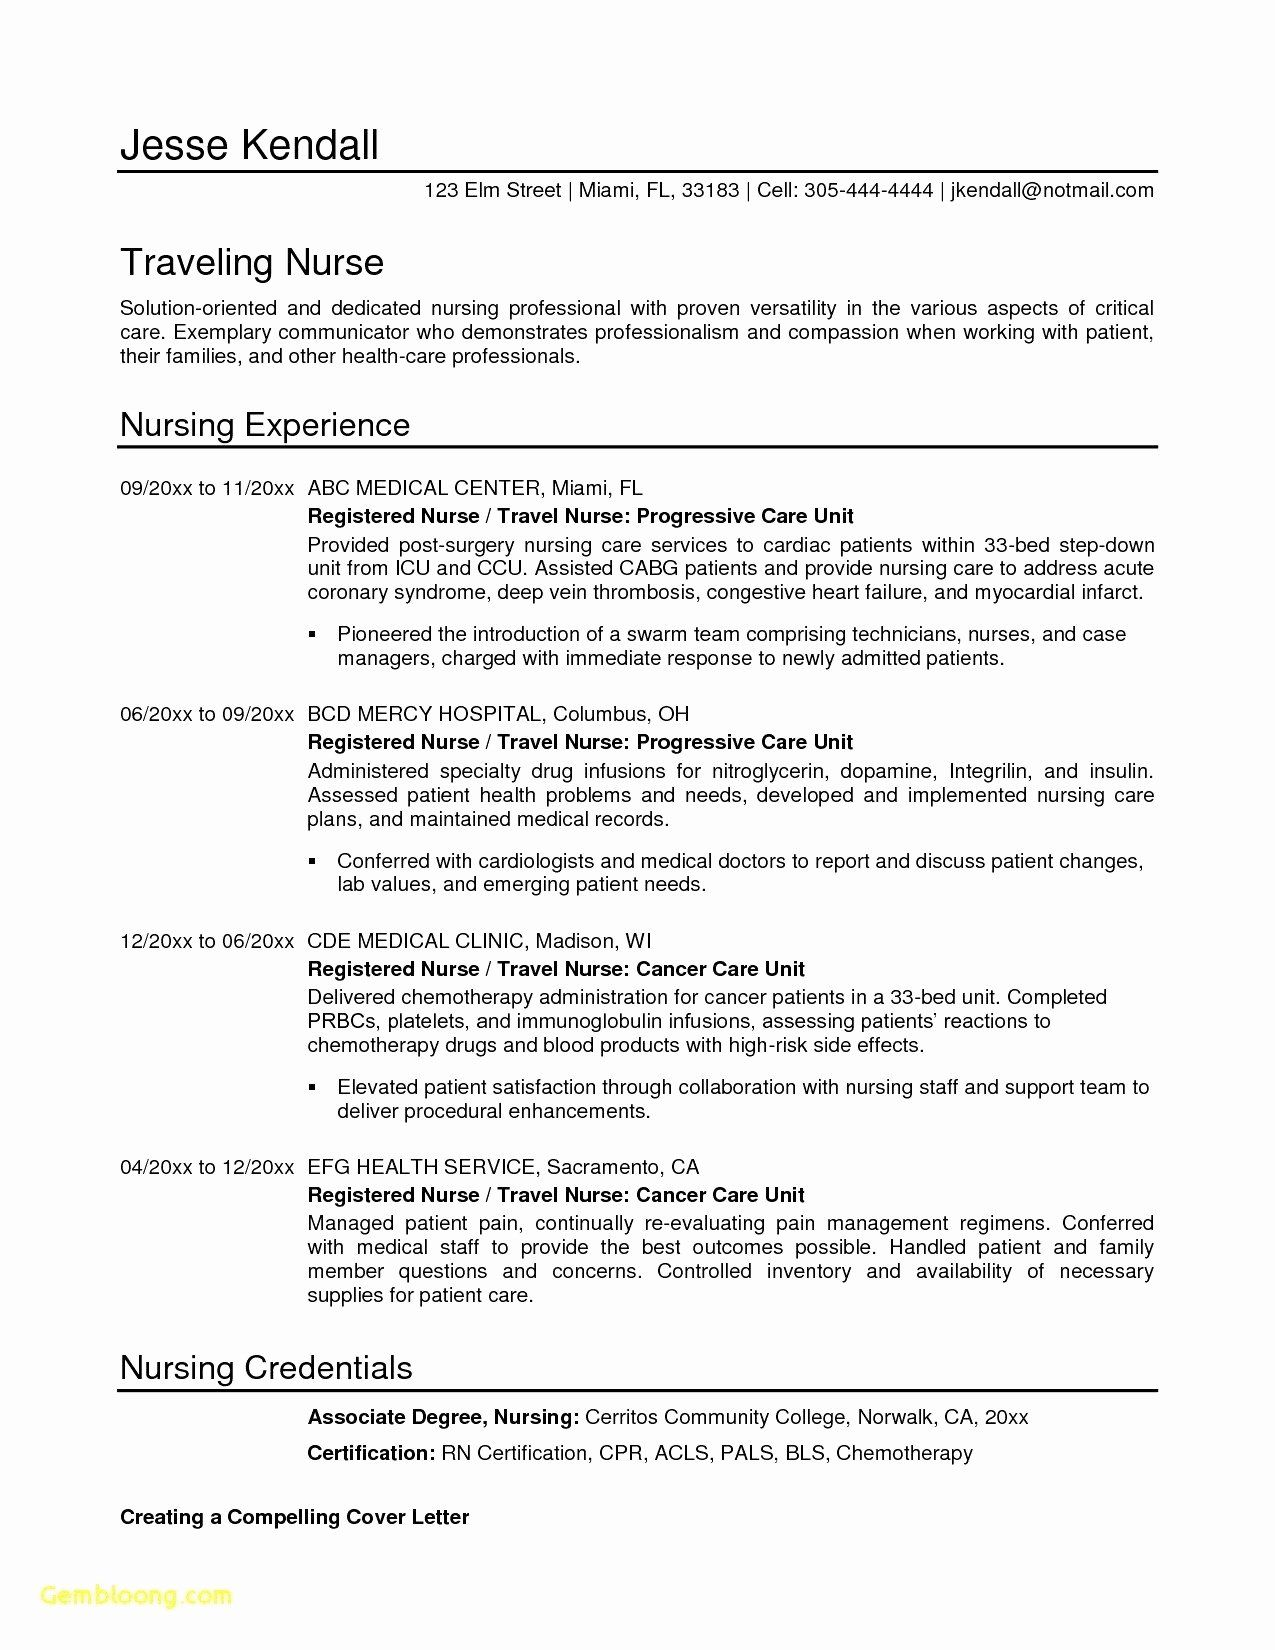 Software Development Consulting Services Agreement Template In